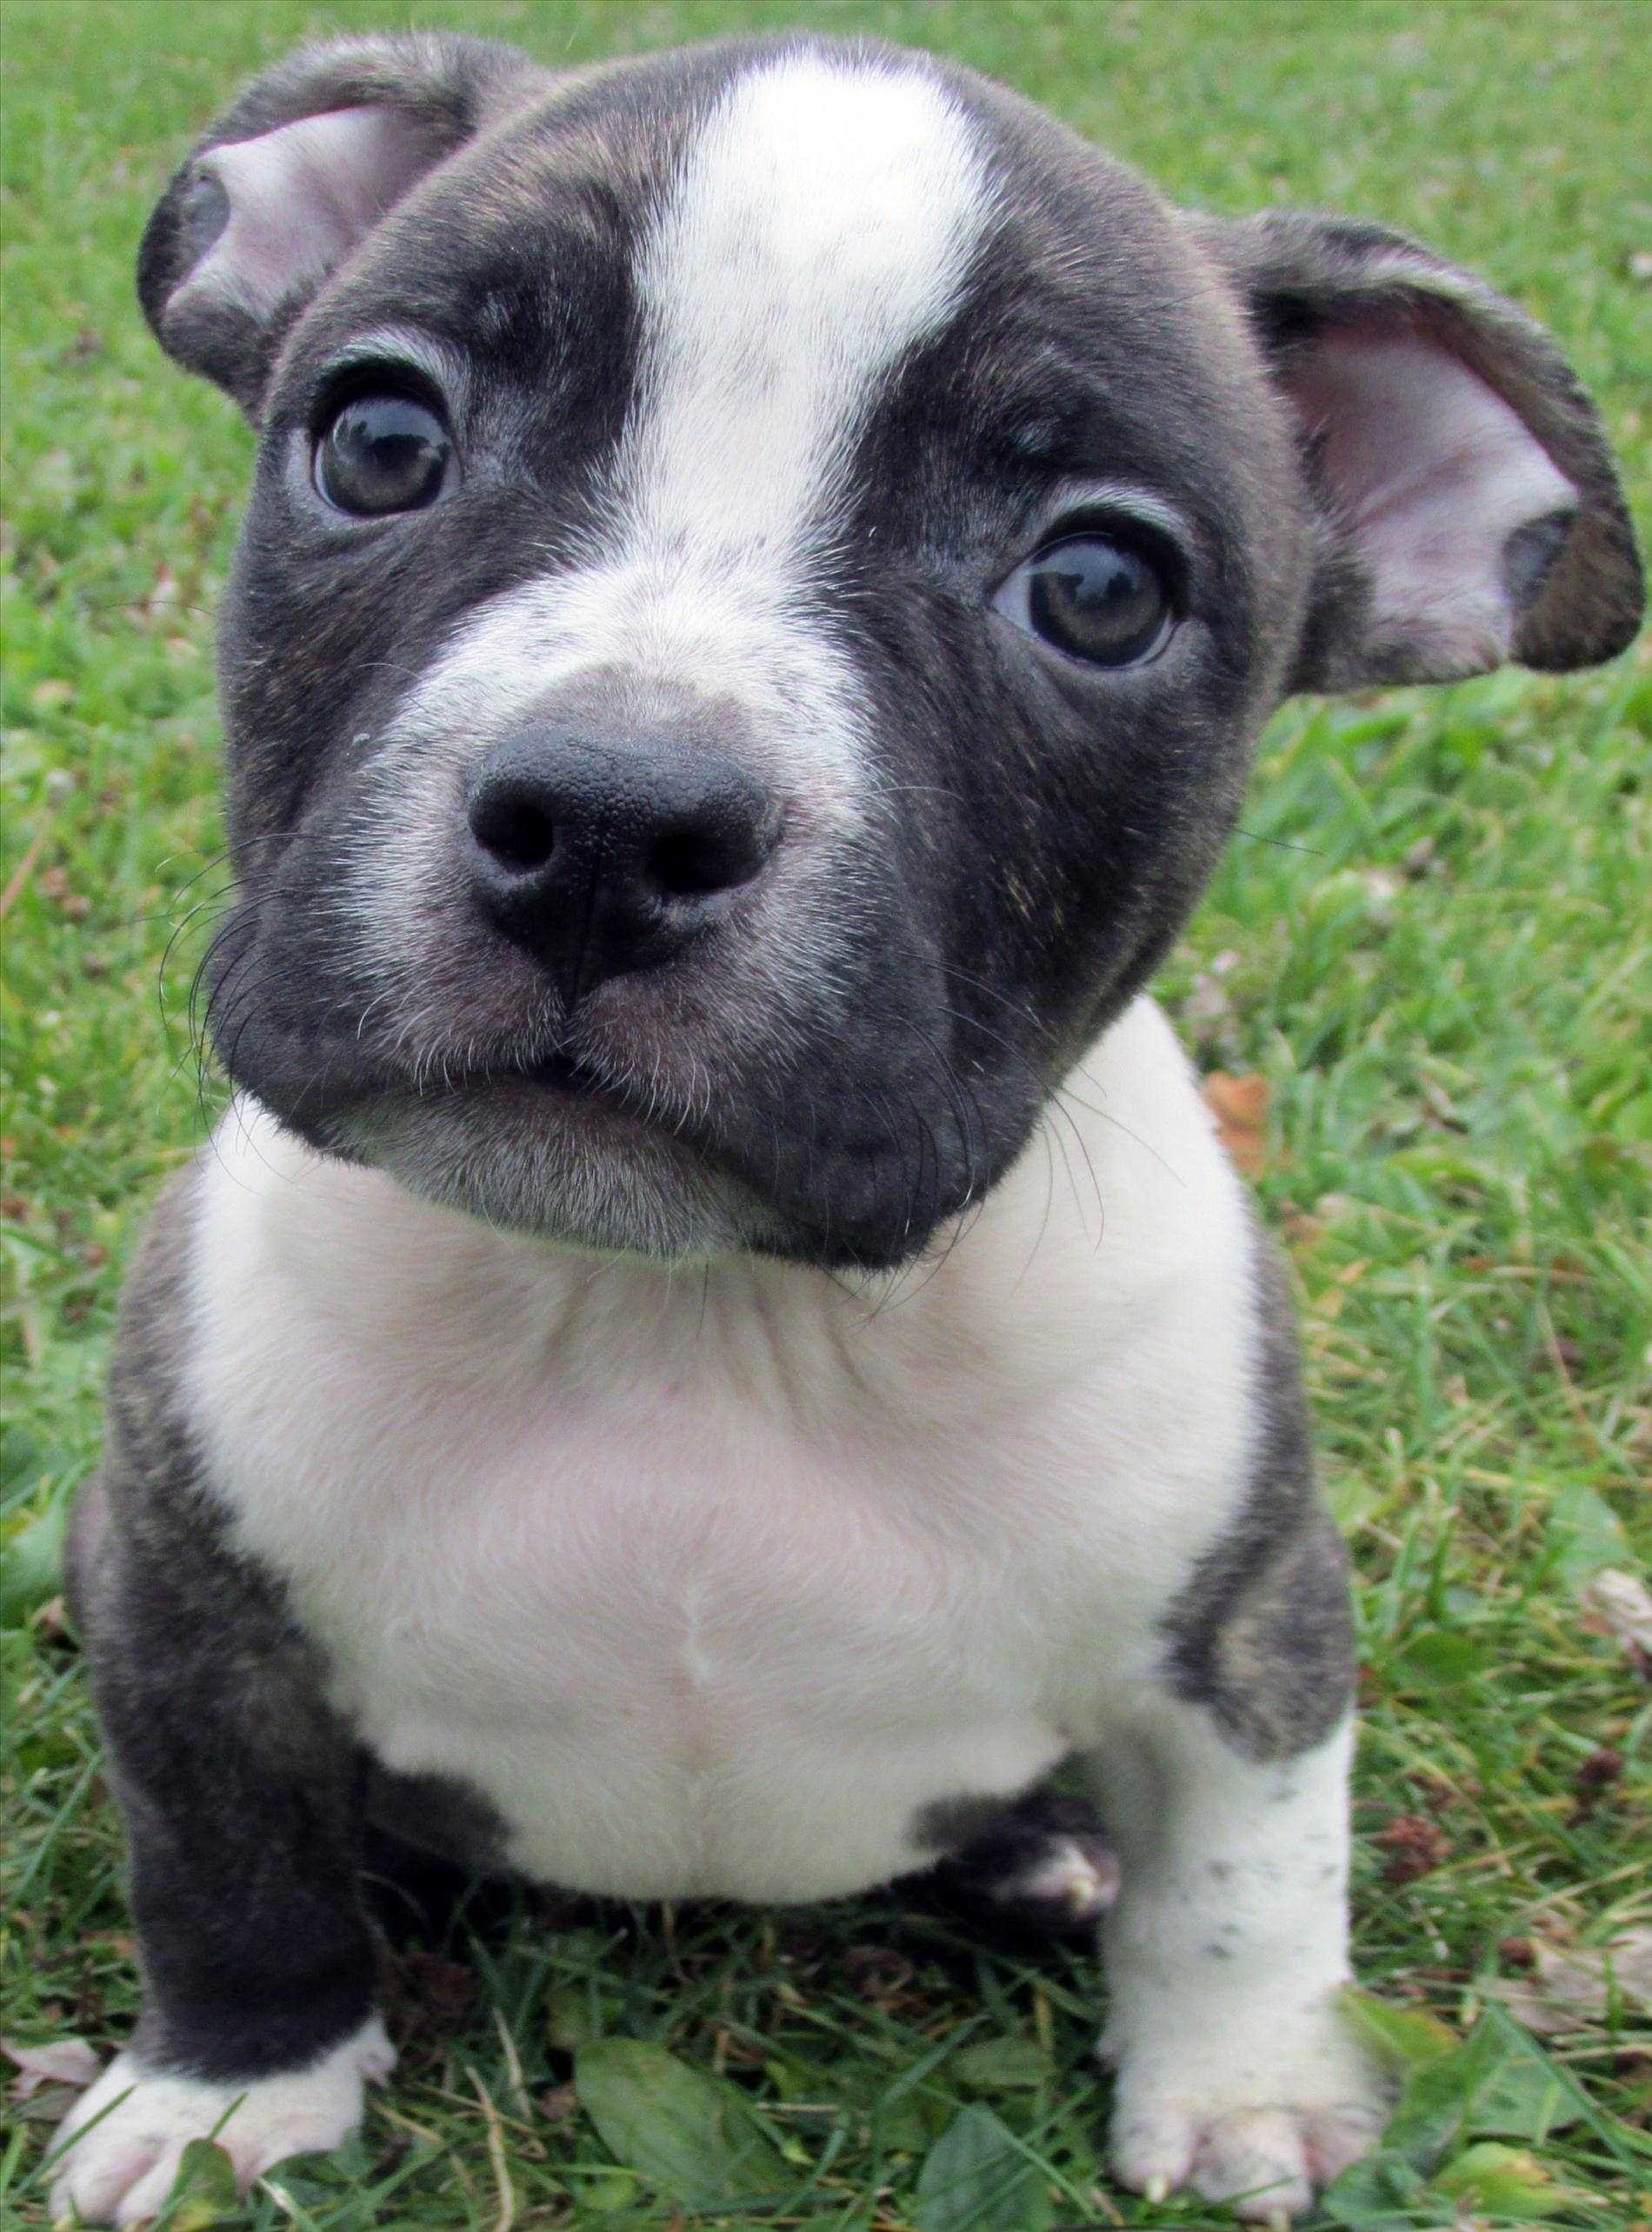 BLUE LEGACY PITS : Bully blue pitbull puppies for sale Photos of pitbull puppies